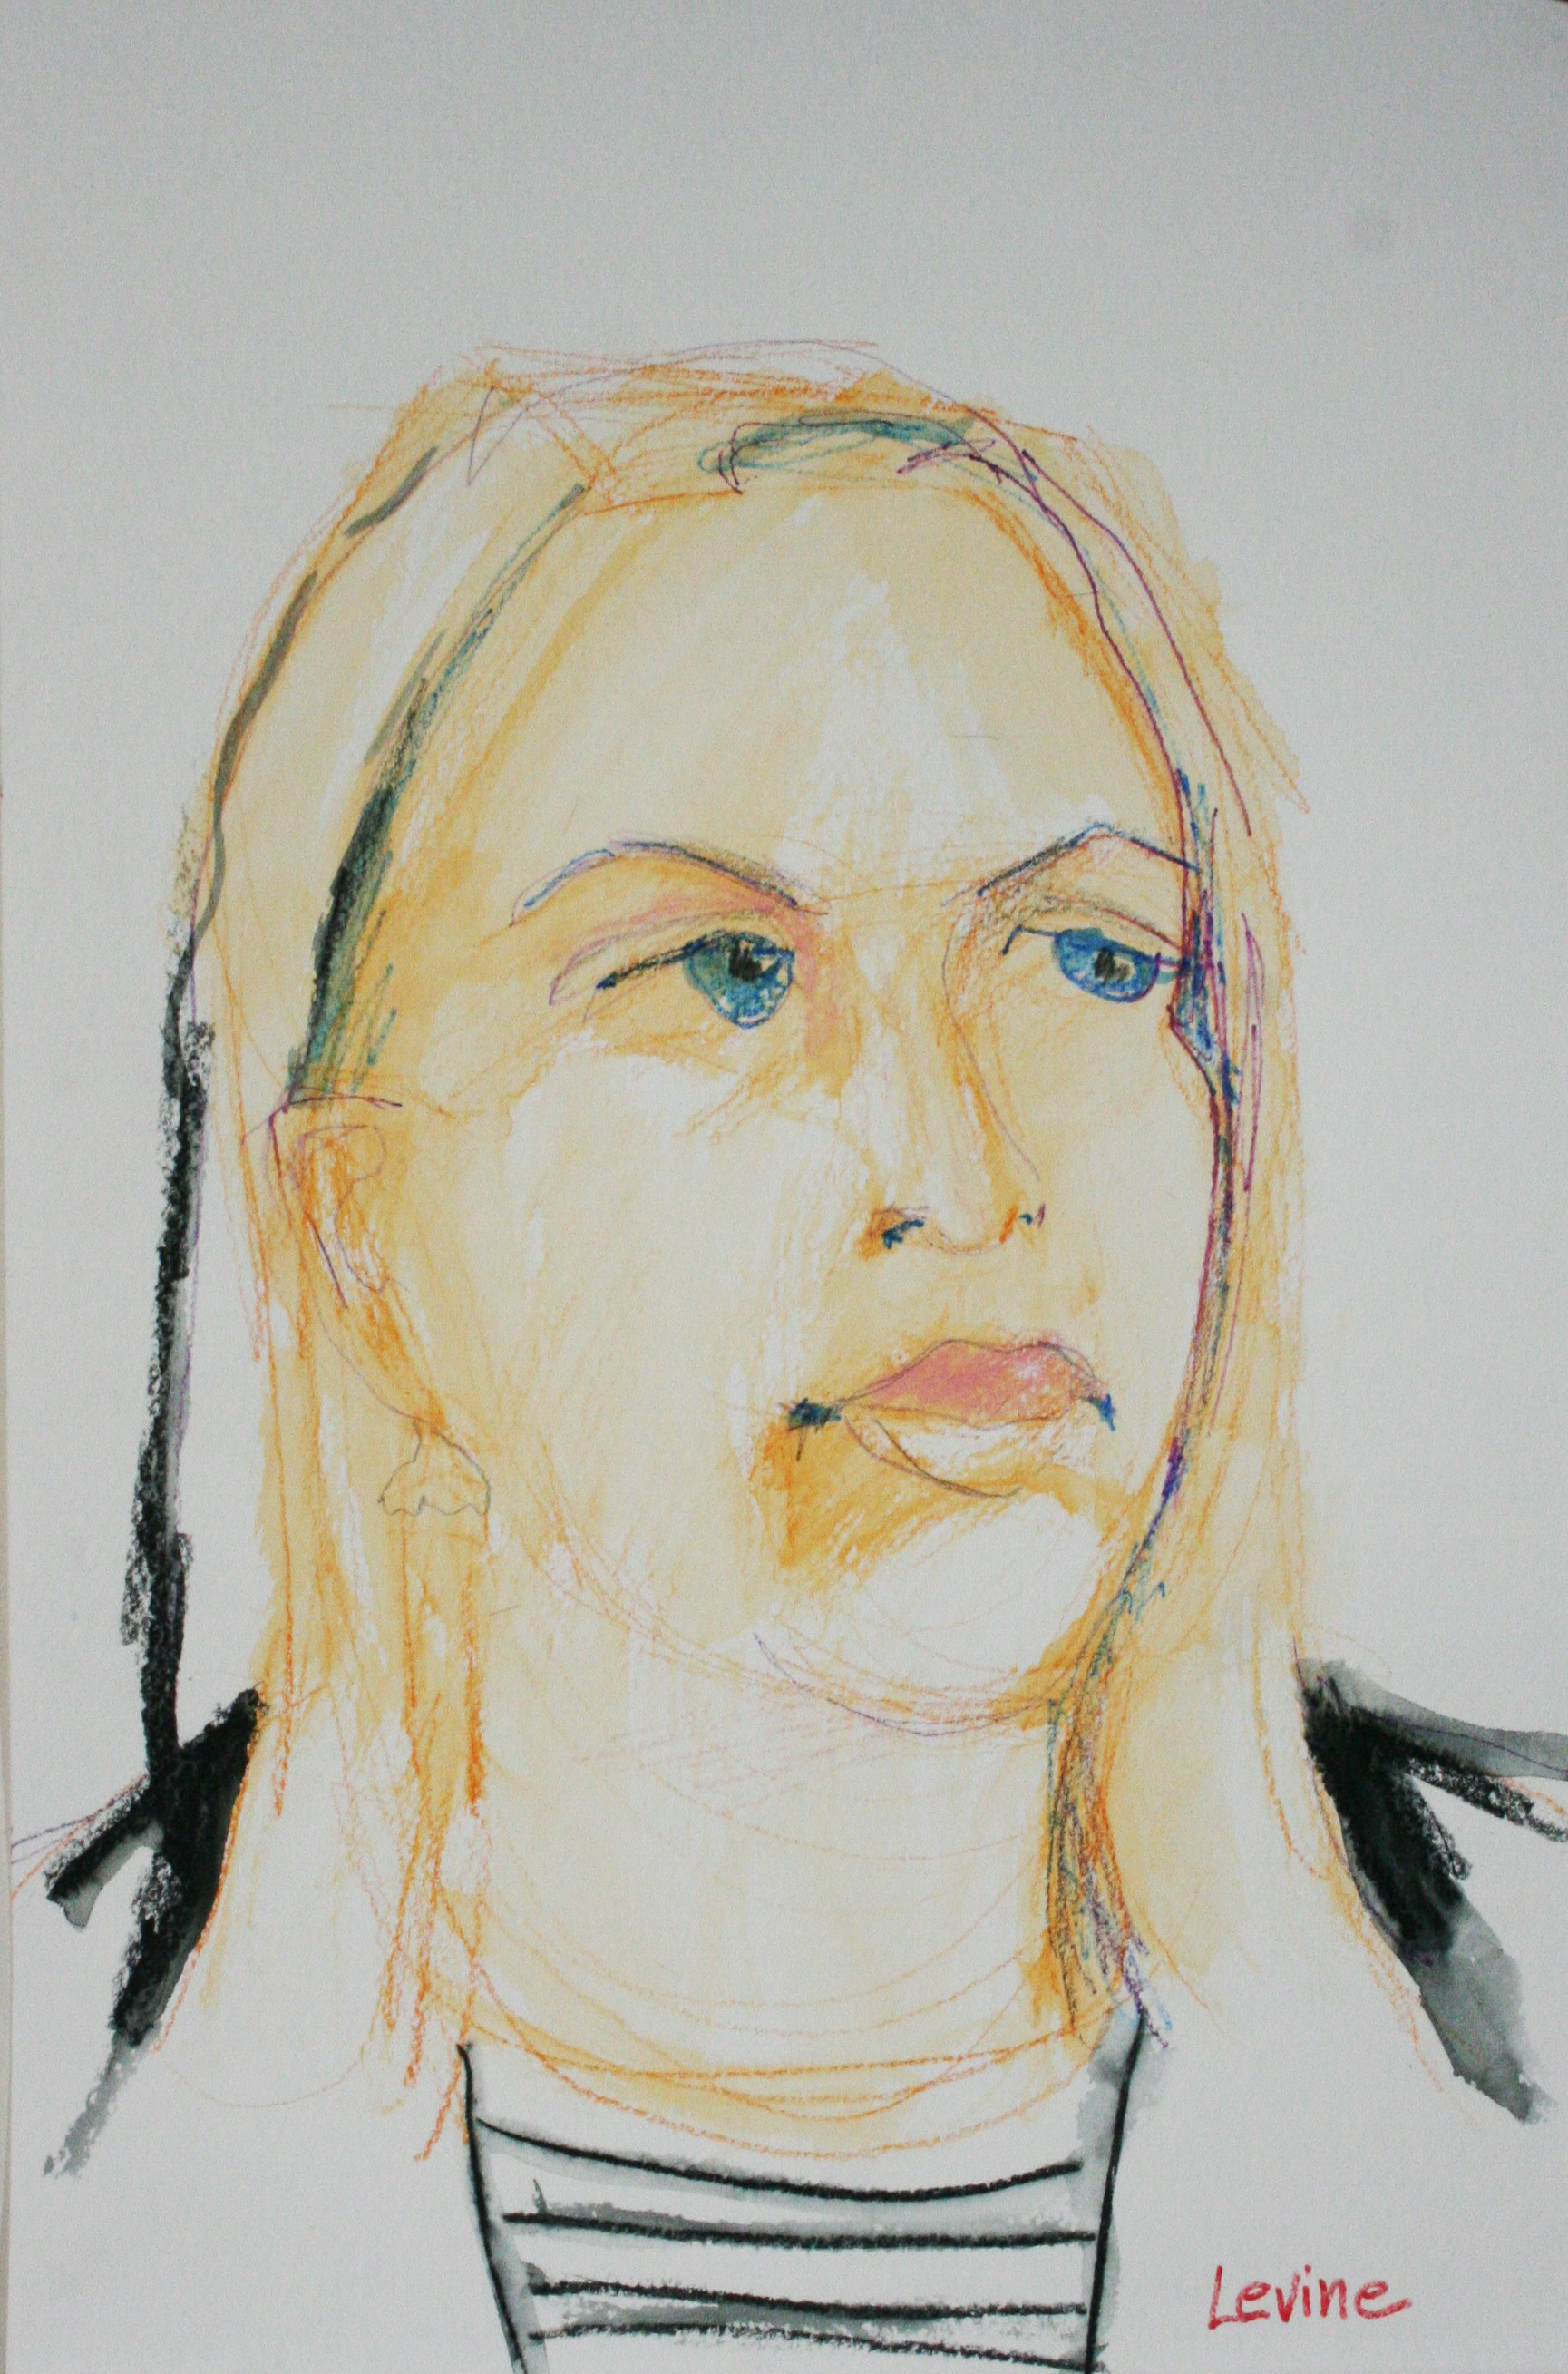 Phyllis Peterson Levine did this 3-hour watercolor pencil drawing.